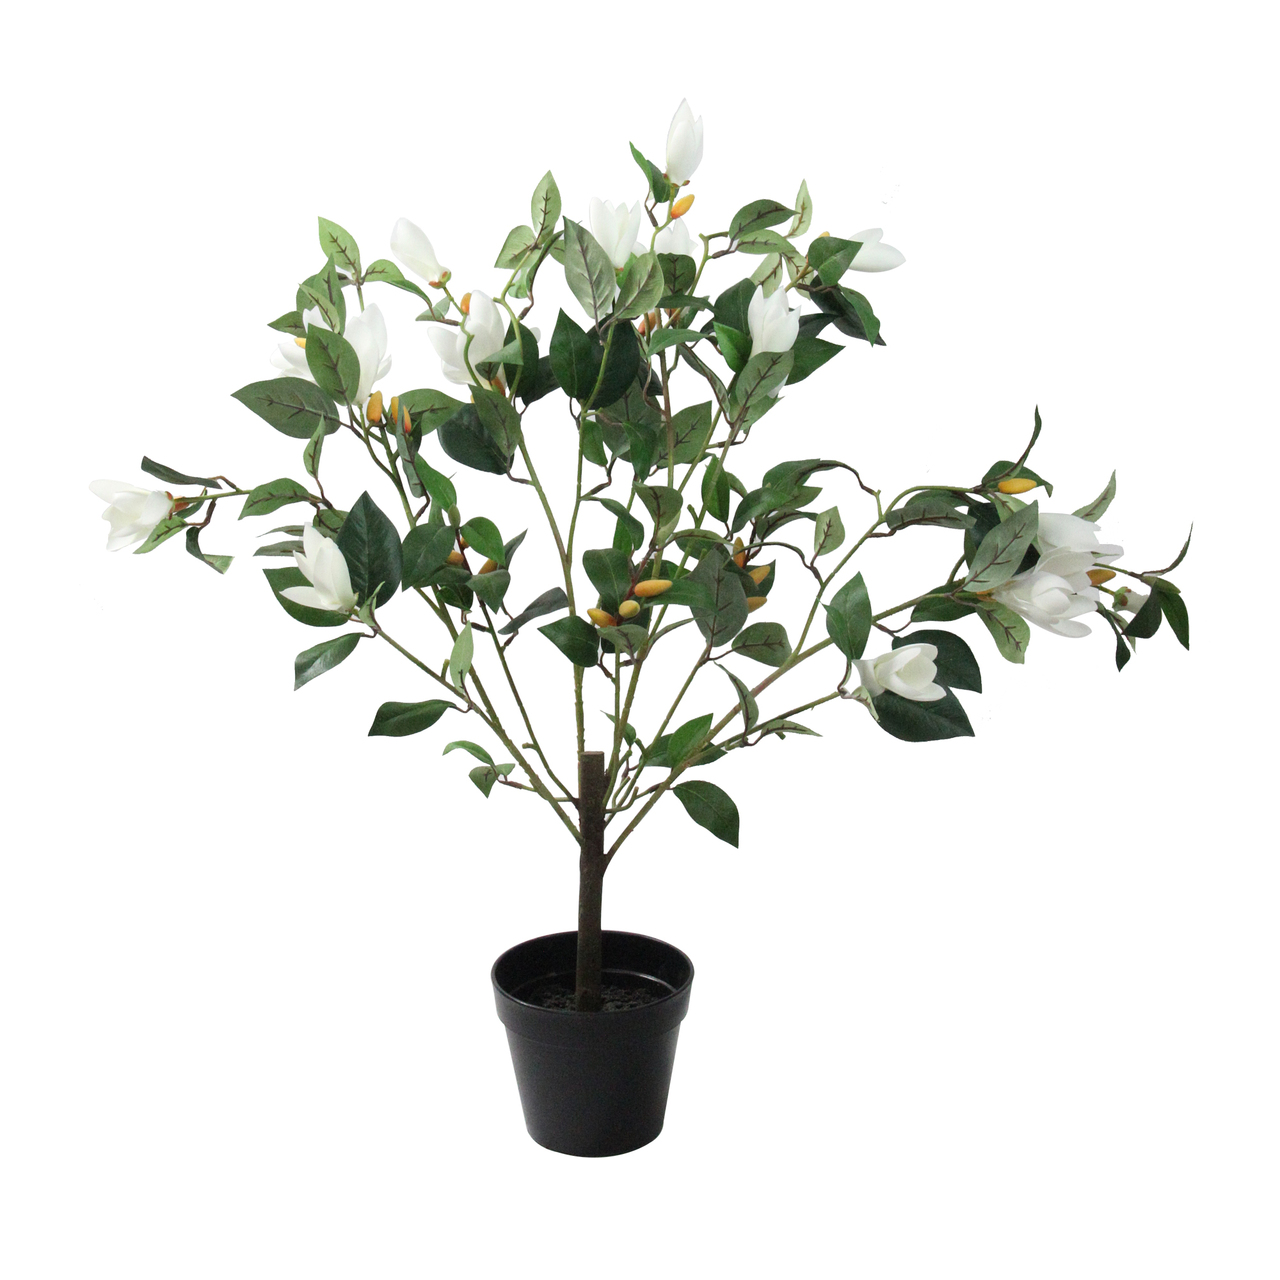 325 Artificial Potted White Lily Magnolia Flowering Tree